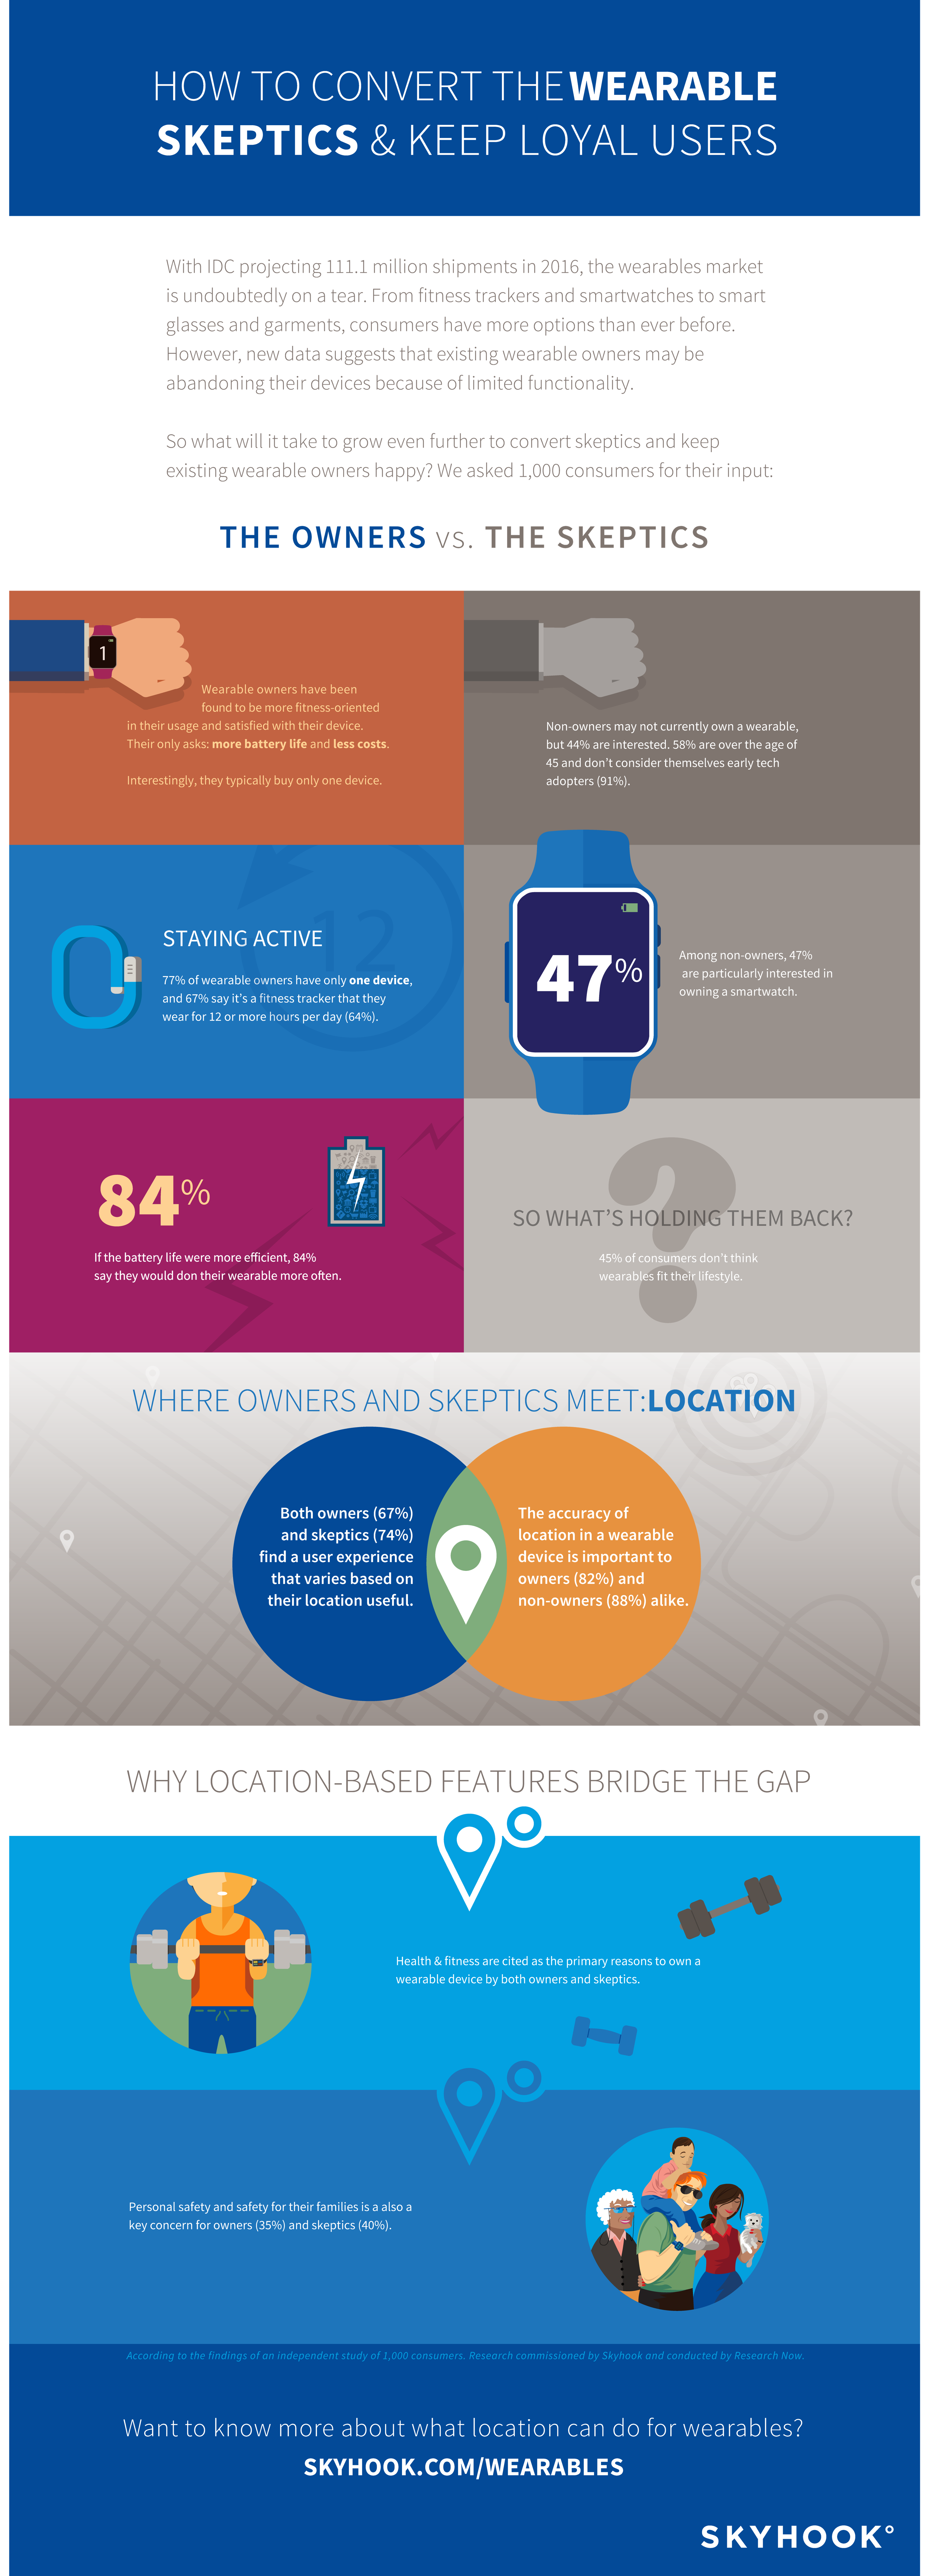 Wearables_infographic_final_10.26.2016-bigger.png